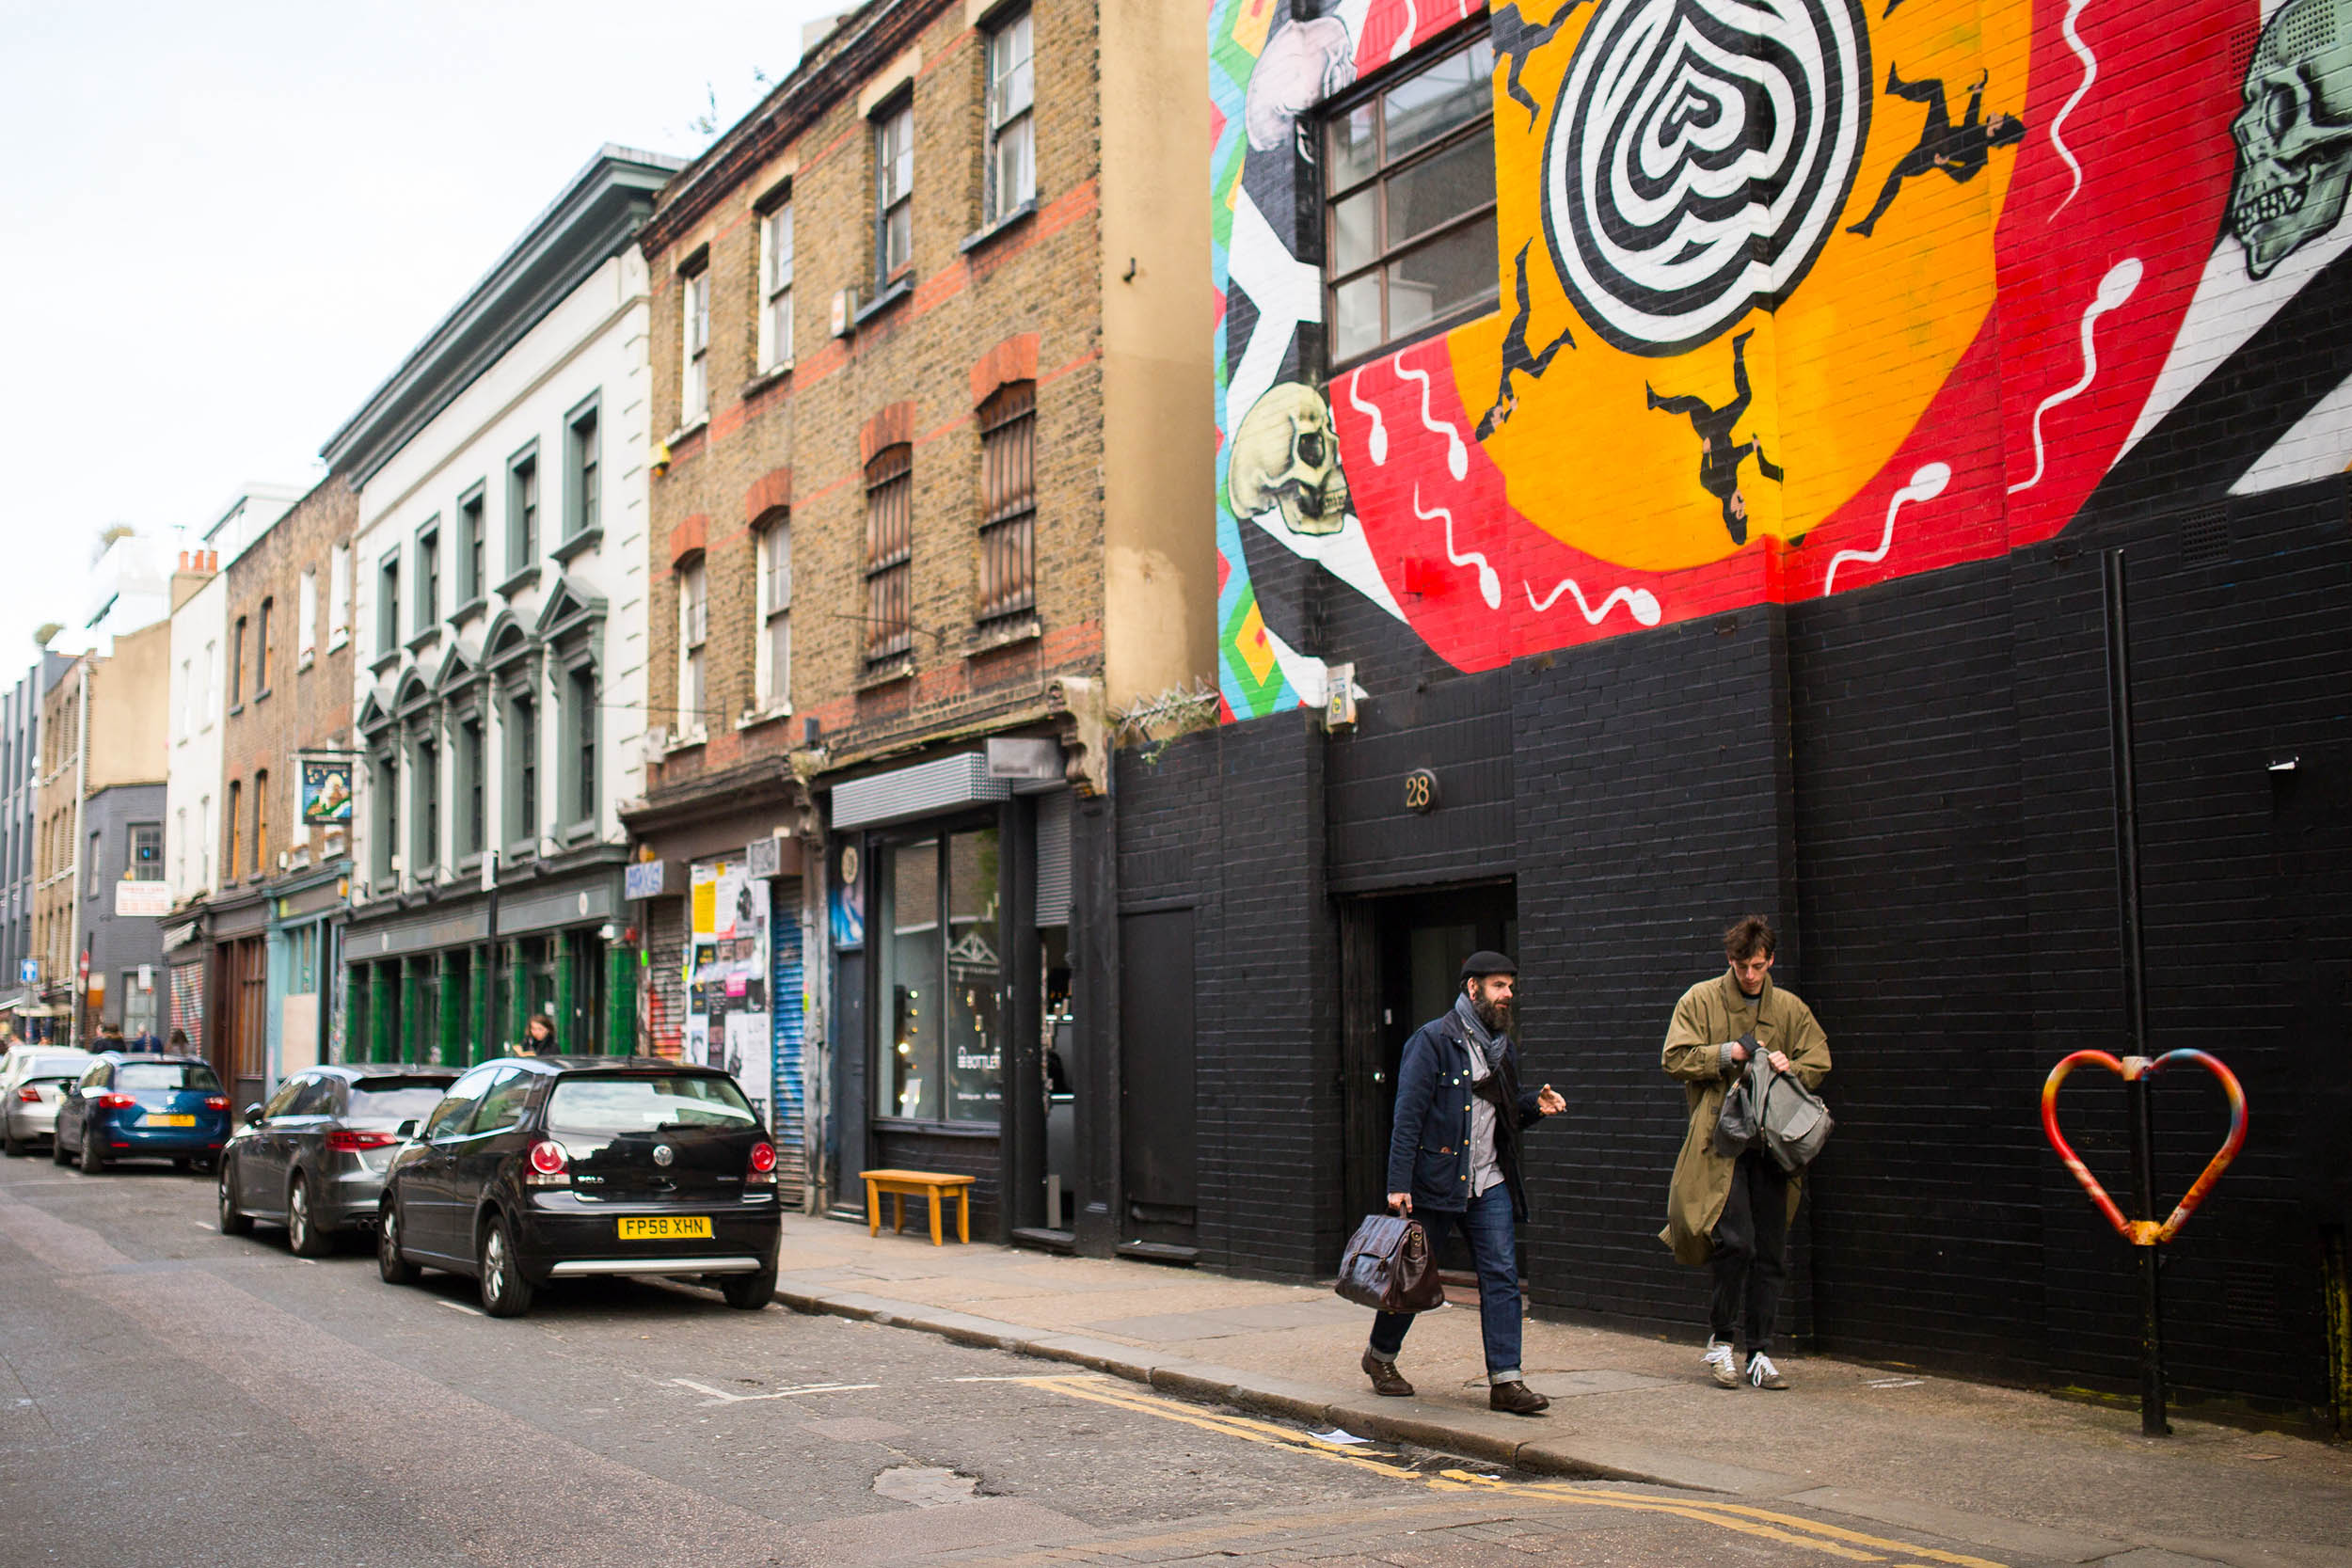 ENGLAND_LONDON_SHOREDITCH_0014